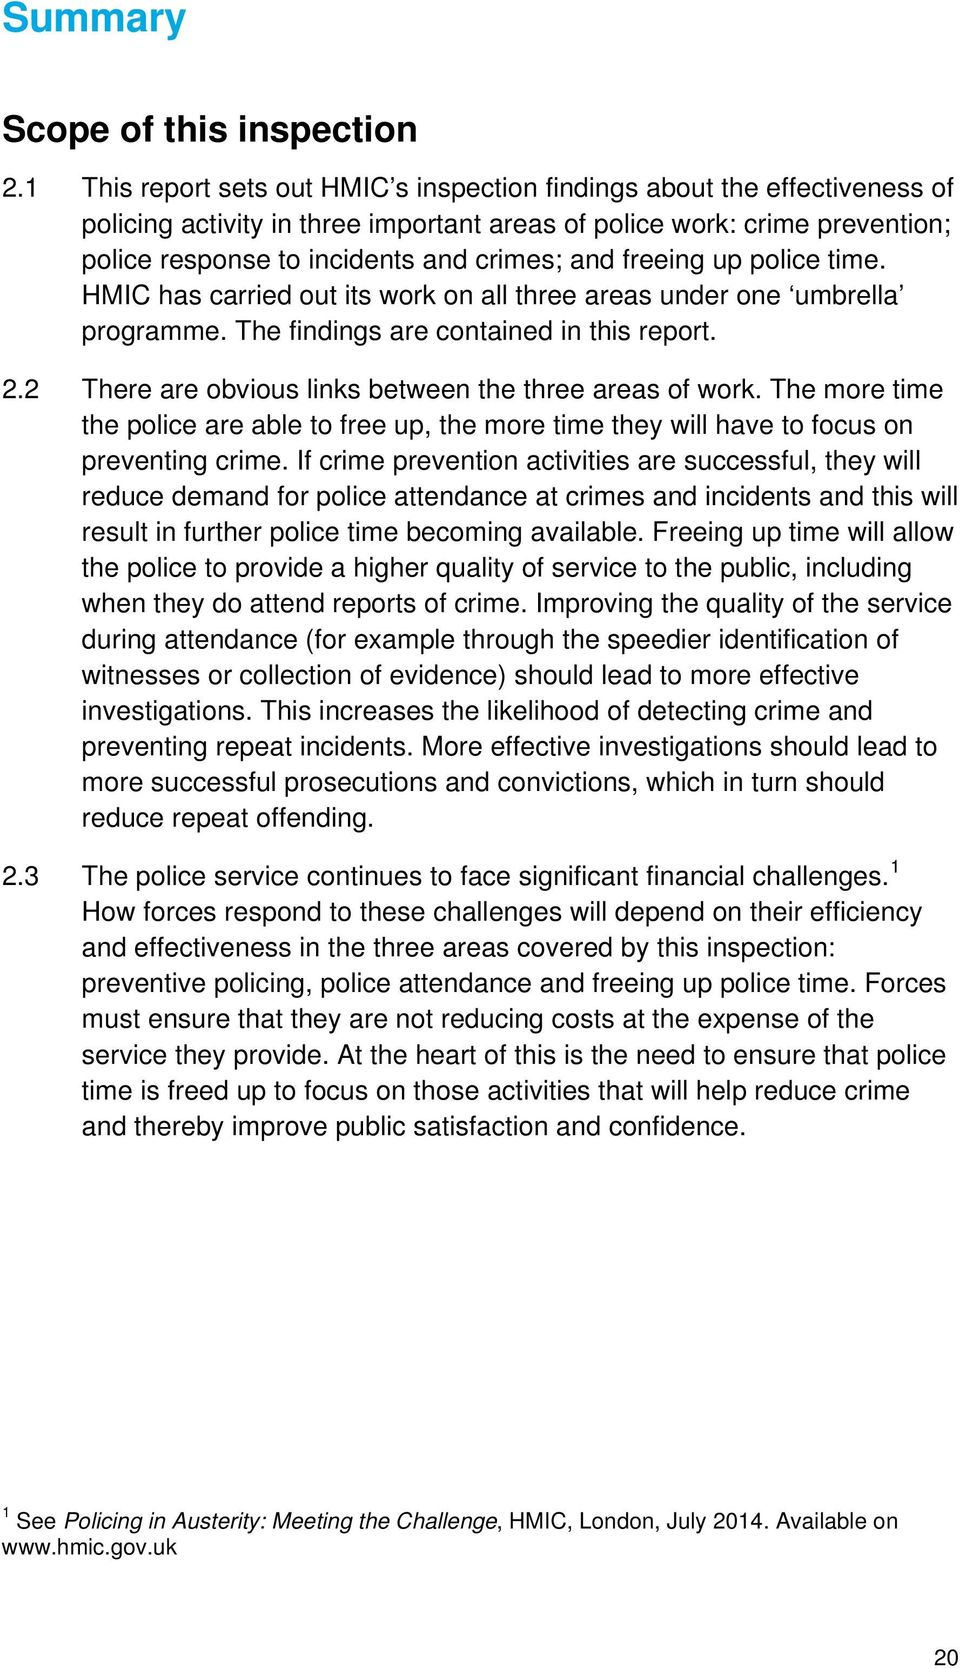 freeing up police time. HMIC has carried out its work on all three areas under one umbrella programme. The findings are contained in this report. 2.